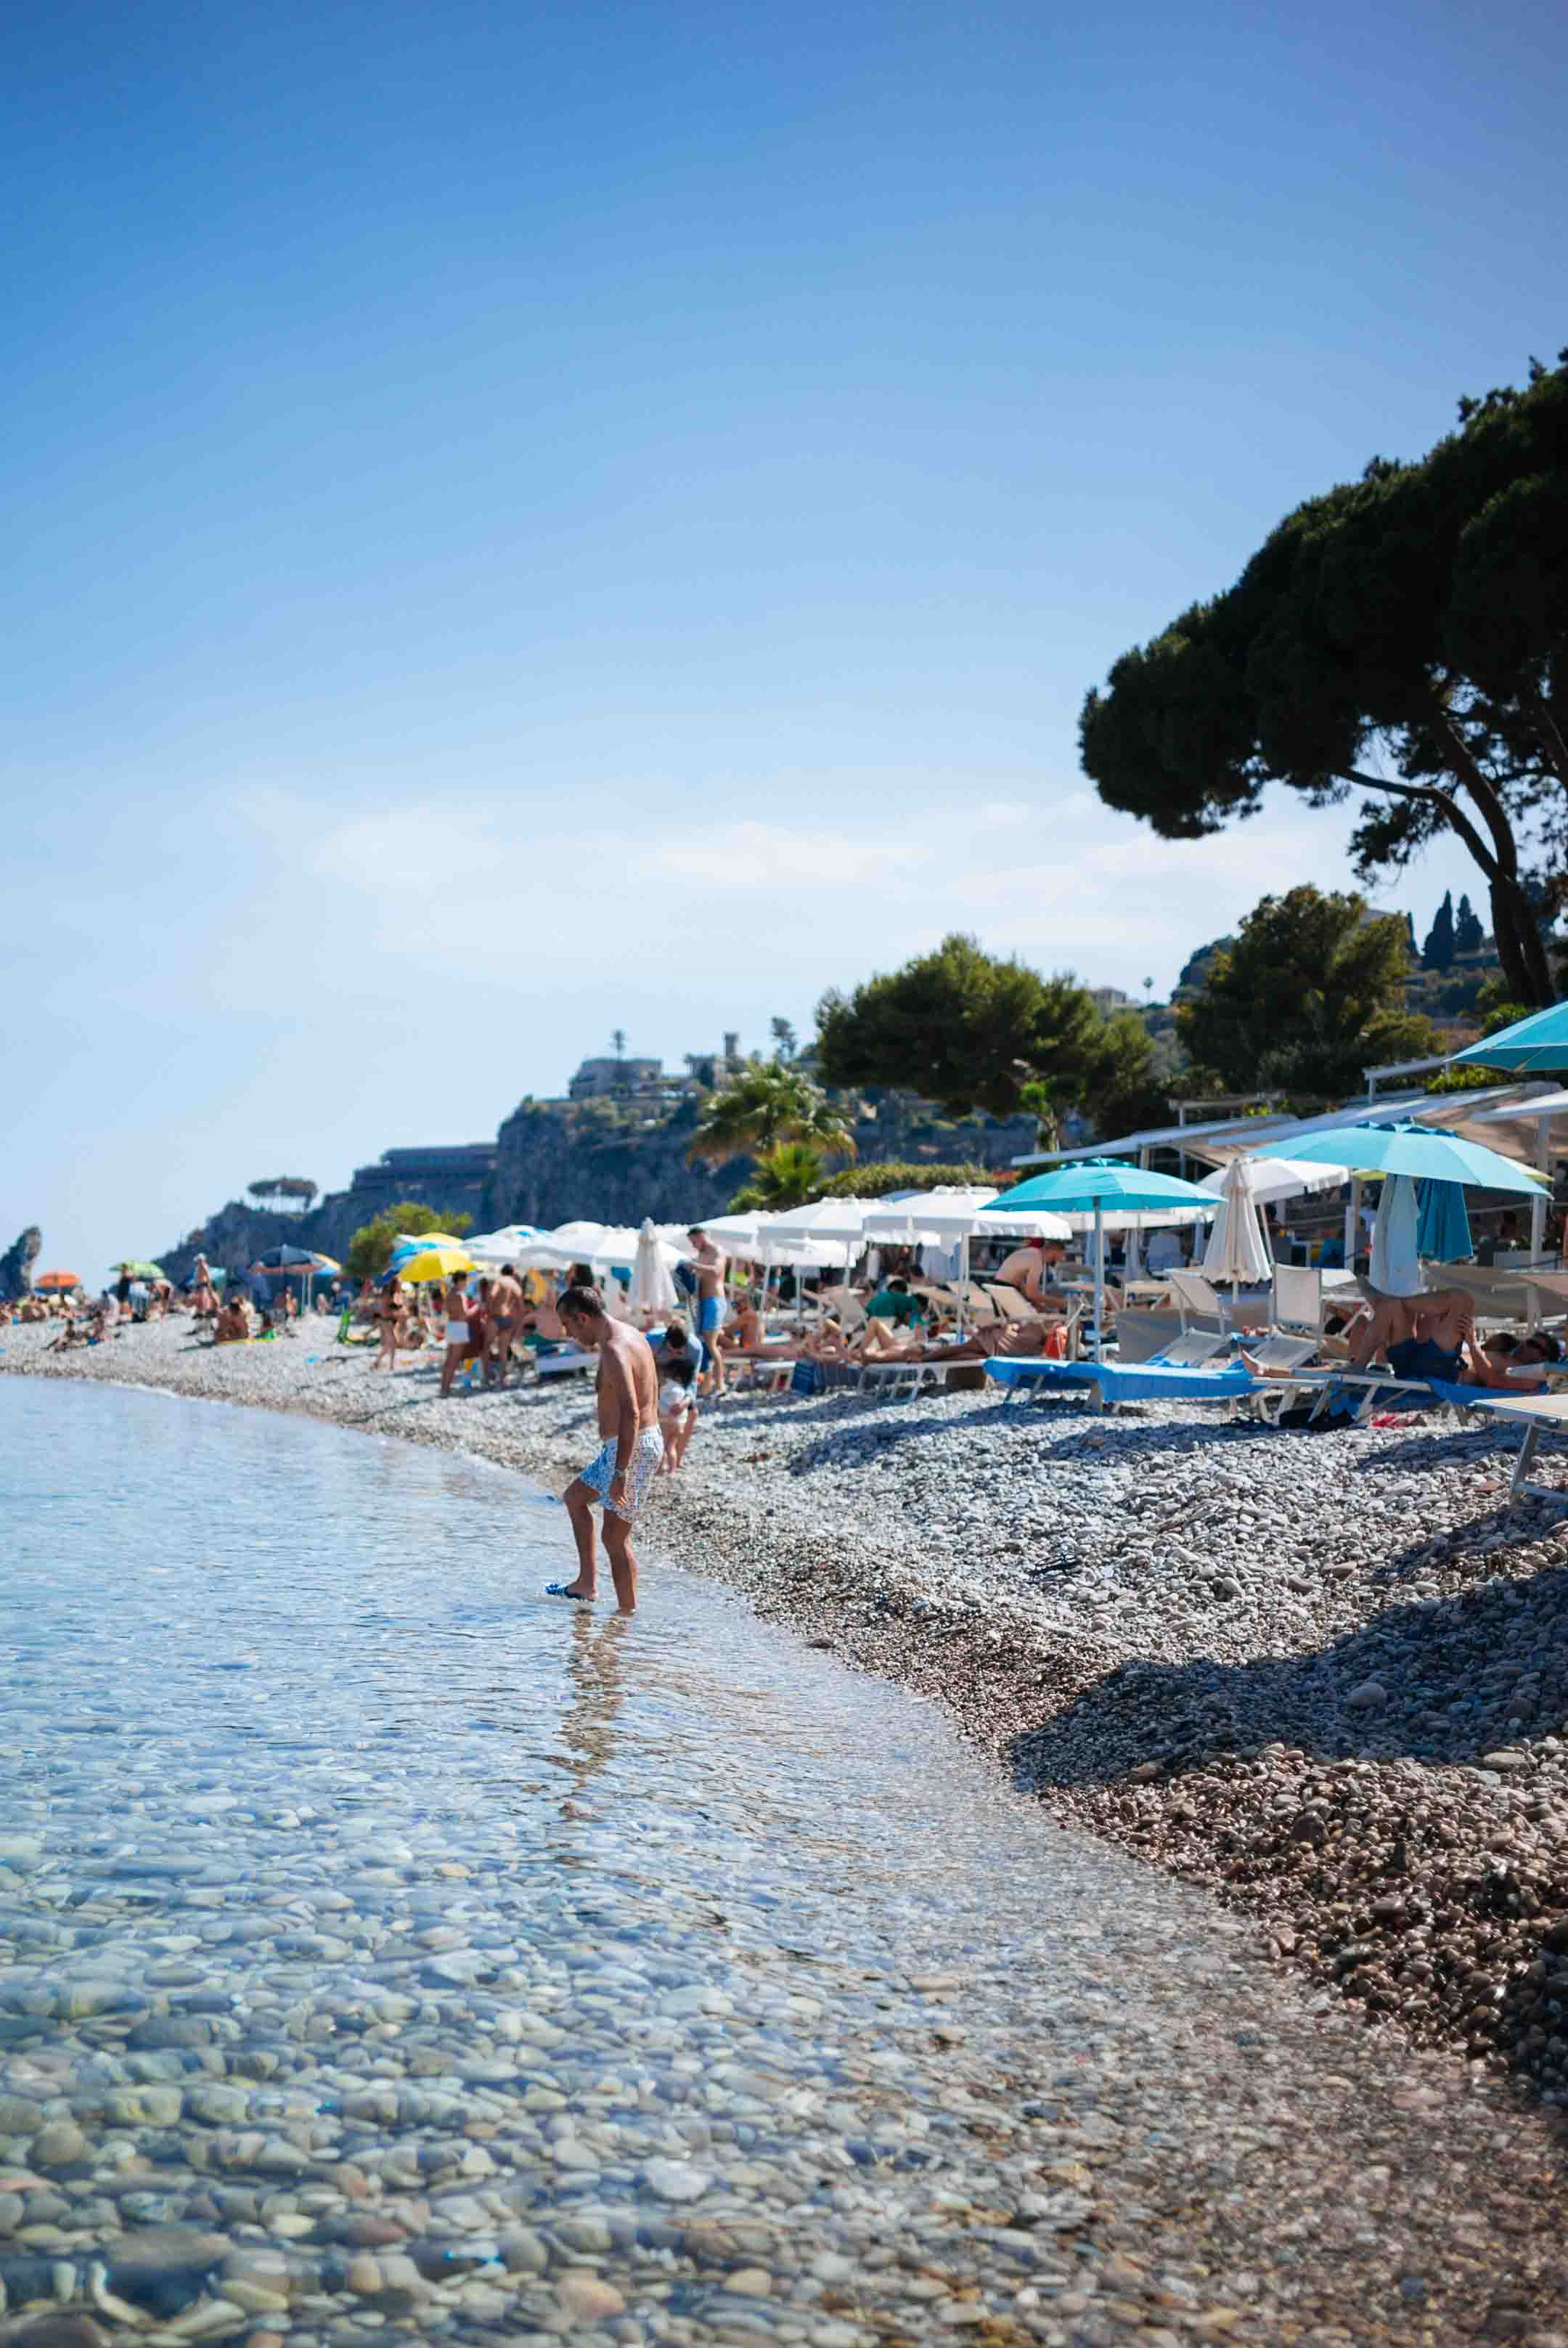 Spend the day at the beach in Sicily at Isola Bella like The Taste SF